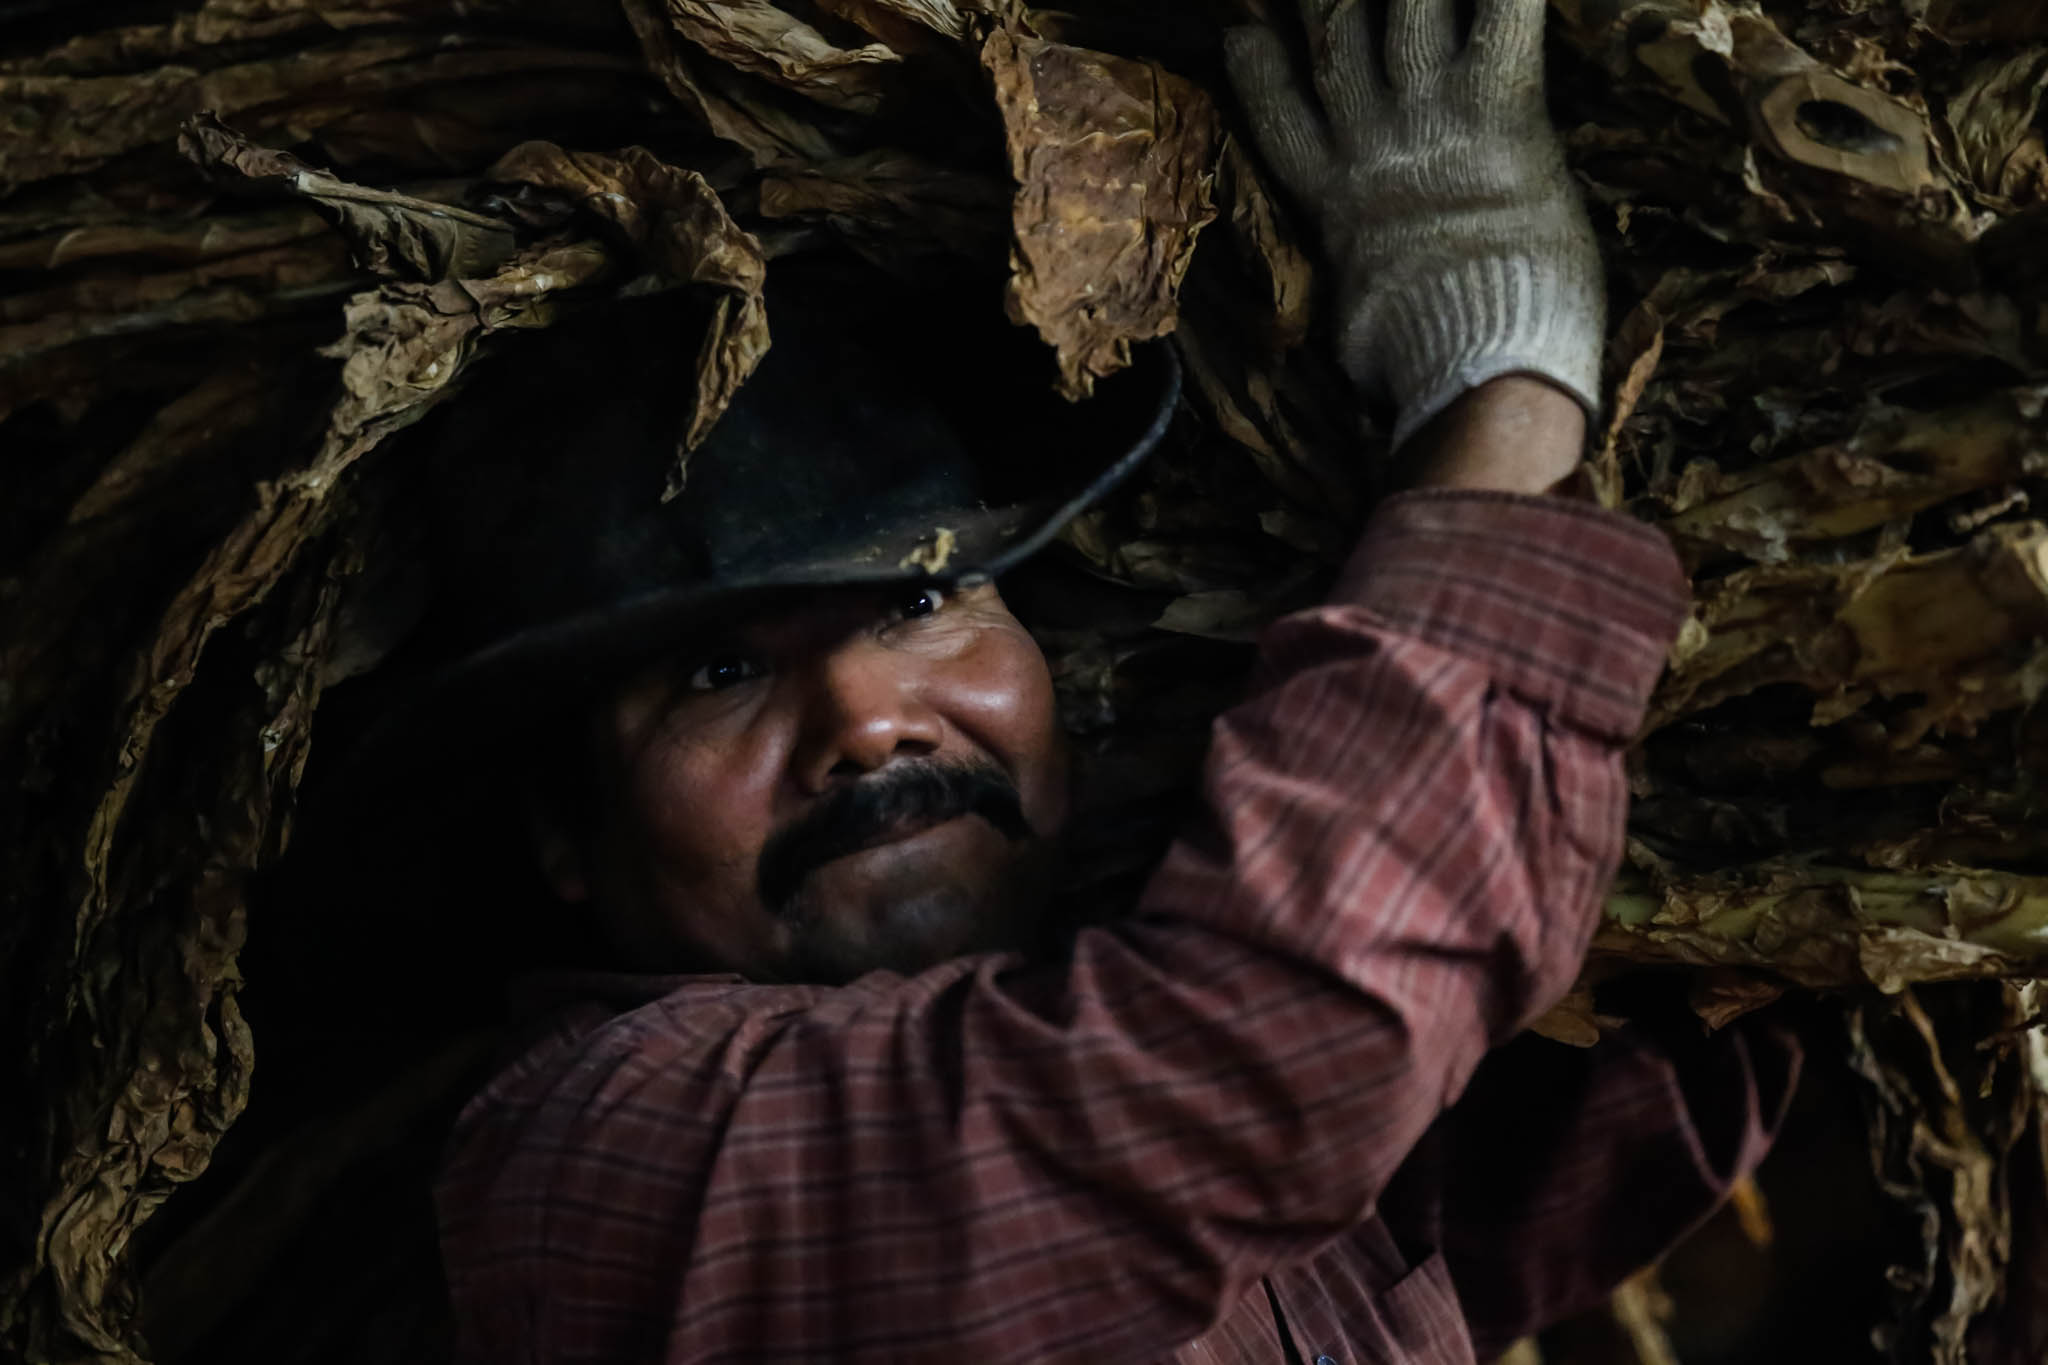 Benjamin Crúz Perez, a 42-year-old migrant worker from Mexico, carries stalks of tobacco to be processed at a barn in Midway, Kentucky.